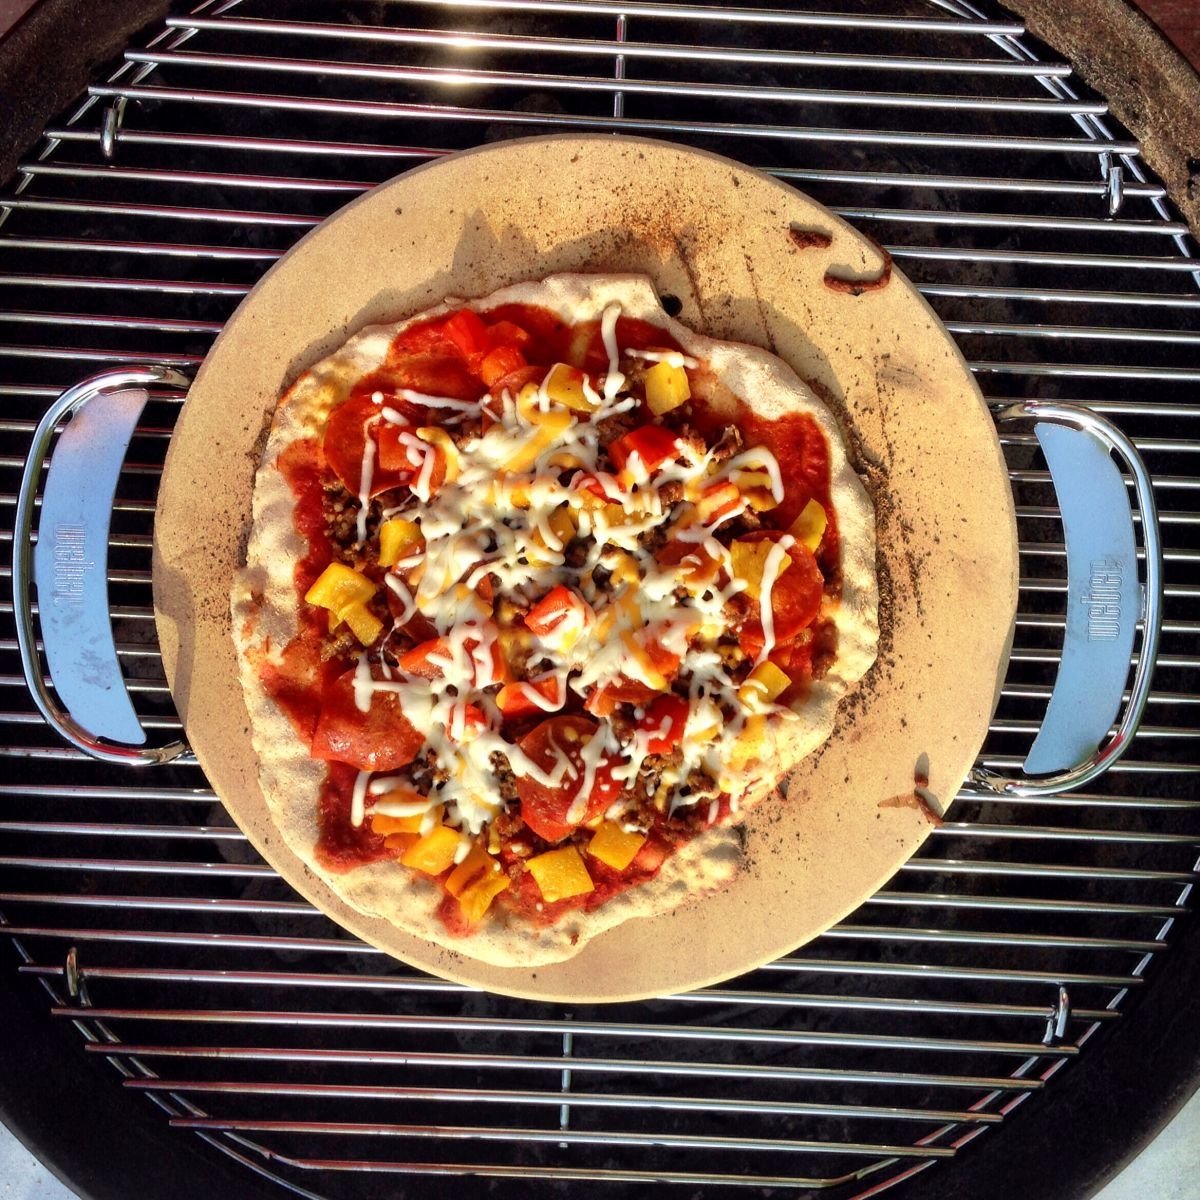 grilled pizza the ultimate dinner tips techniques weber grills. Black Bedroom Furniture Sets. Home Design Ideas